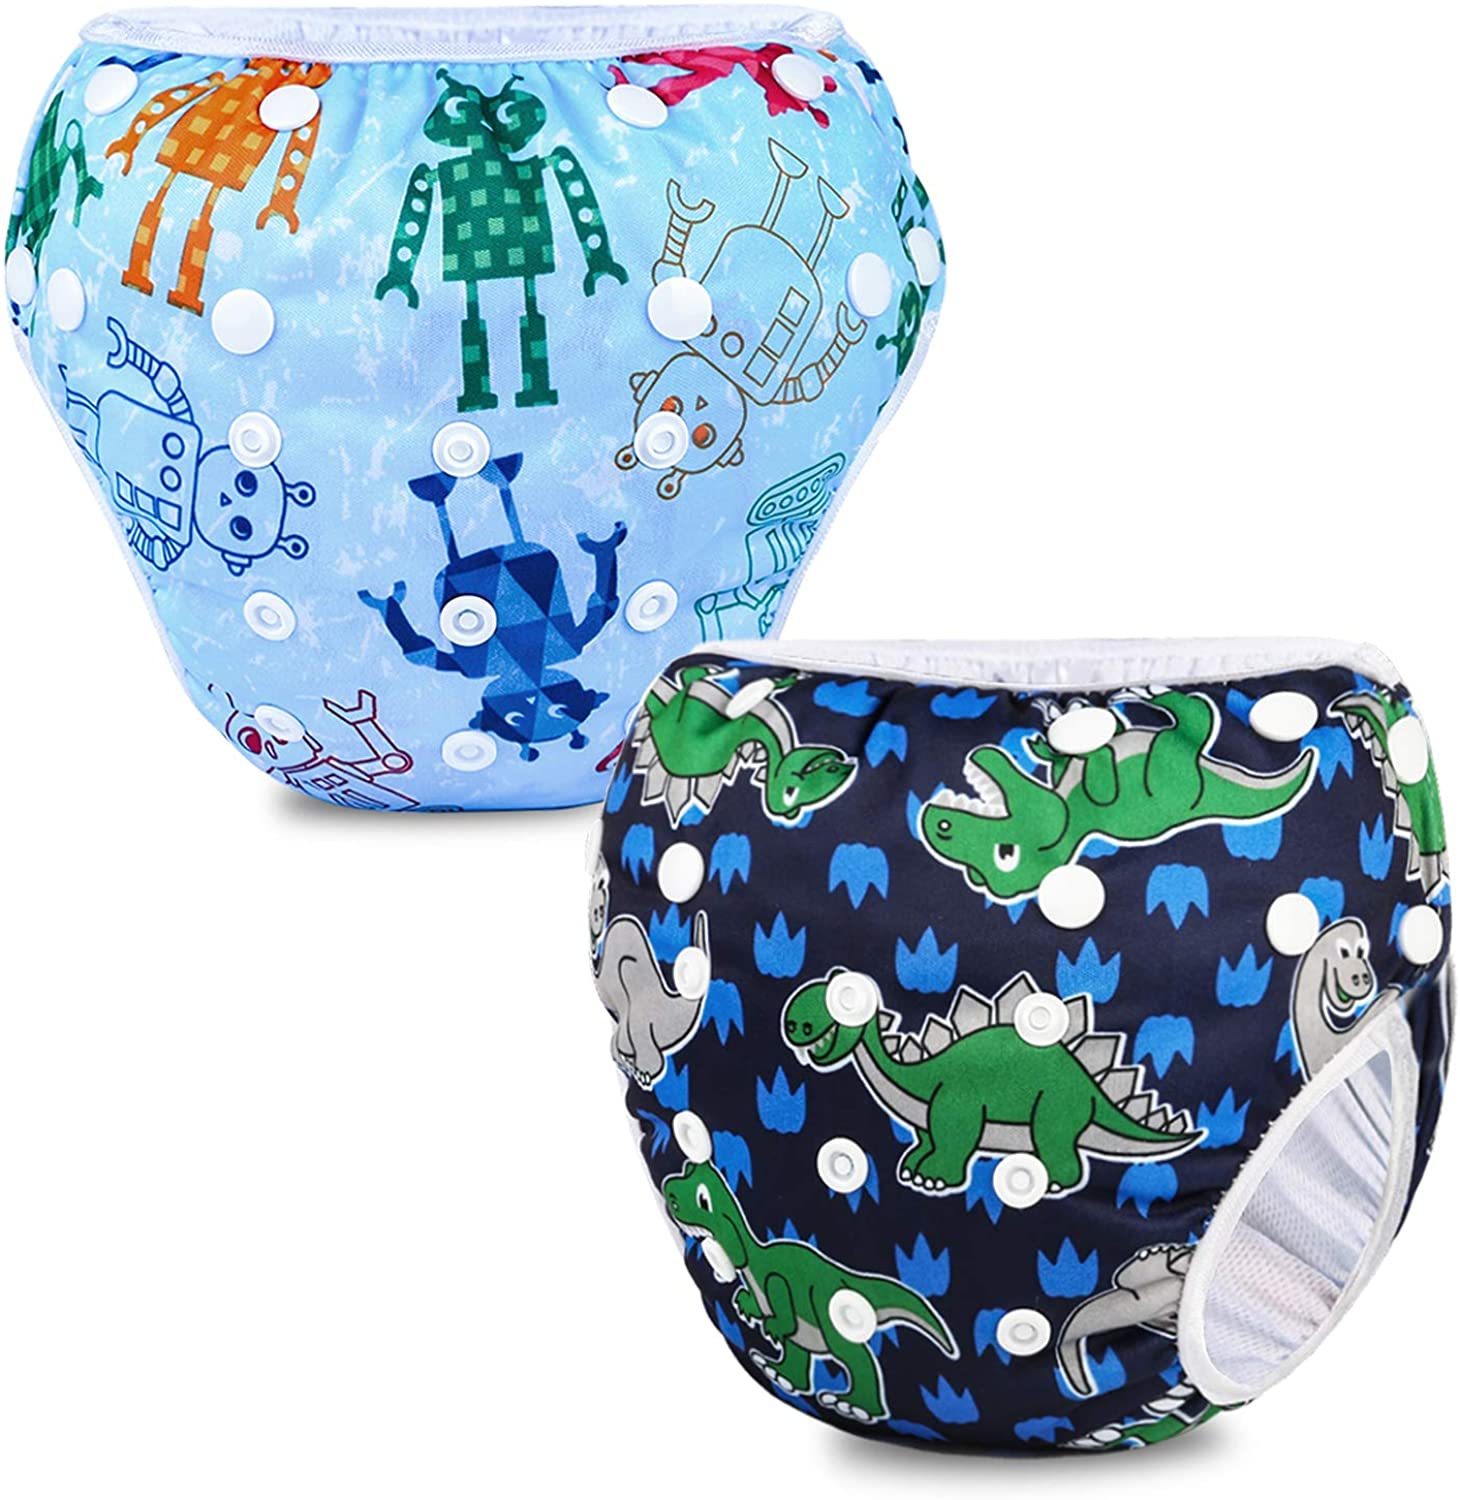 Phogary Boys' Baby Snap Reusable Absorbent Swimsuit Diaper(2-pack for 6.6-33lbs)